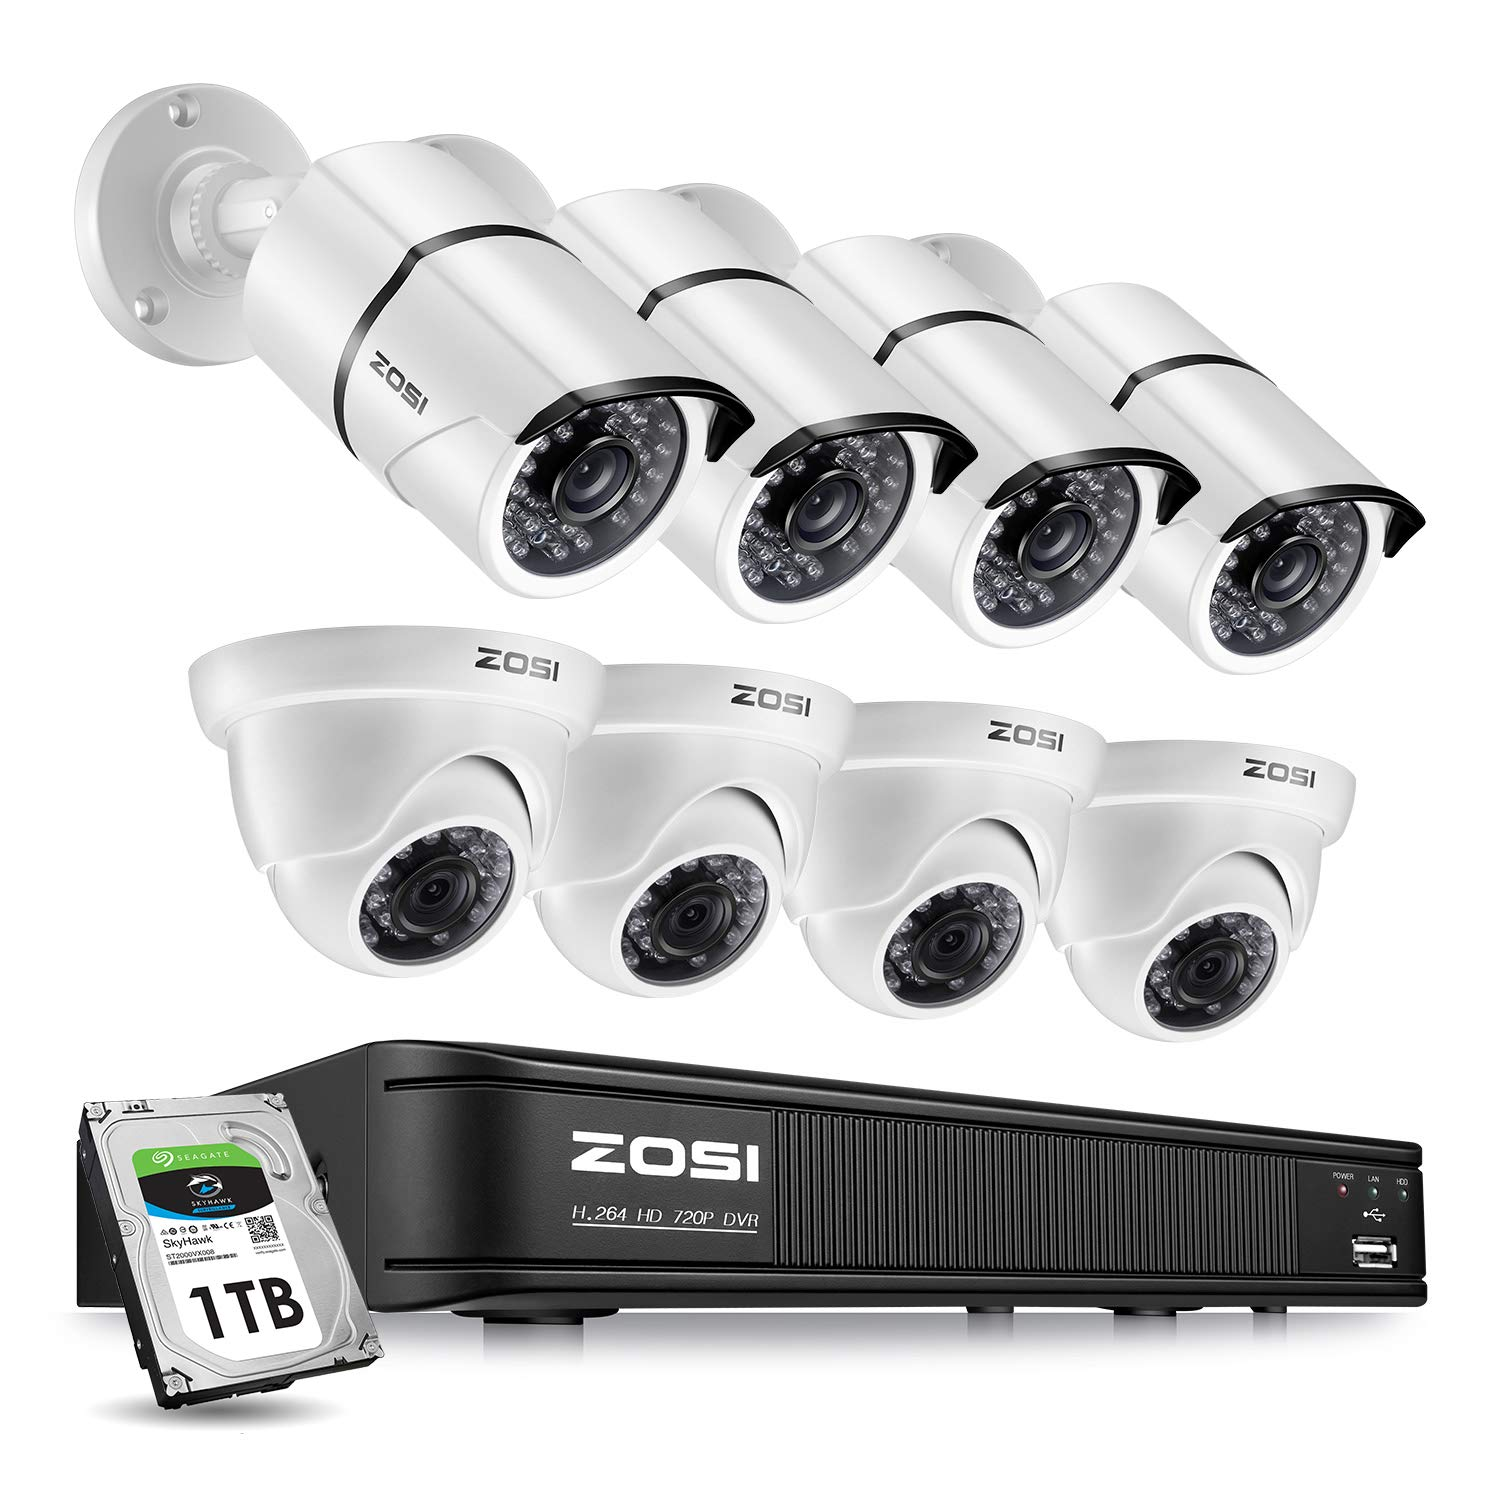 ZOSI Security Camera System 8 Channel,1080p Lite Surveillance DVR Recorder with Hard Drive 1TB and (8) 720p Weatherproof CCTV Camera Outdoor/Indoor,Remote Access and Motion Detection by ZOSI